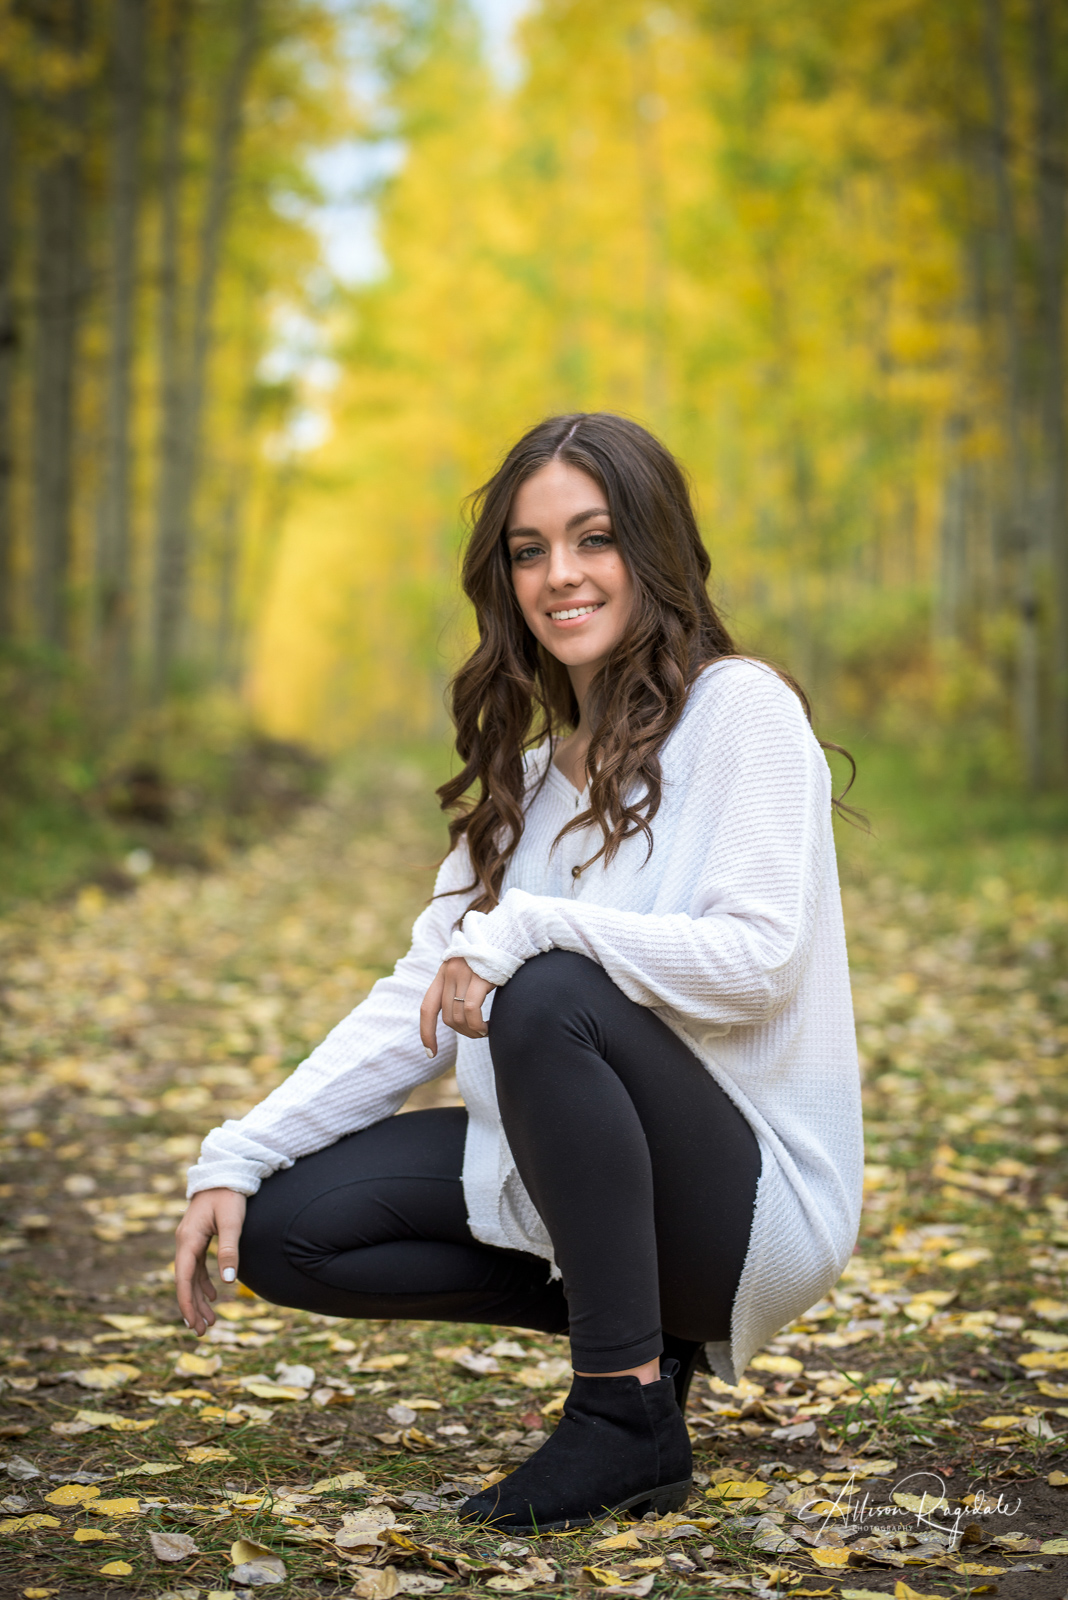 Gabi Smith's Senior Portraits | Durango, Colorado